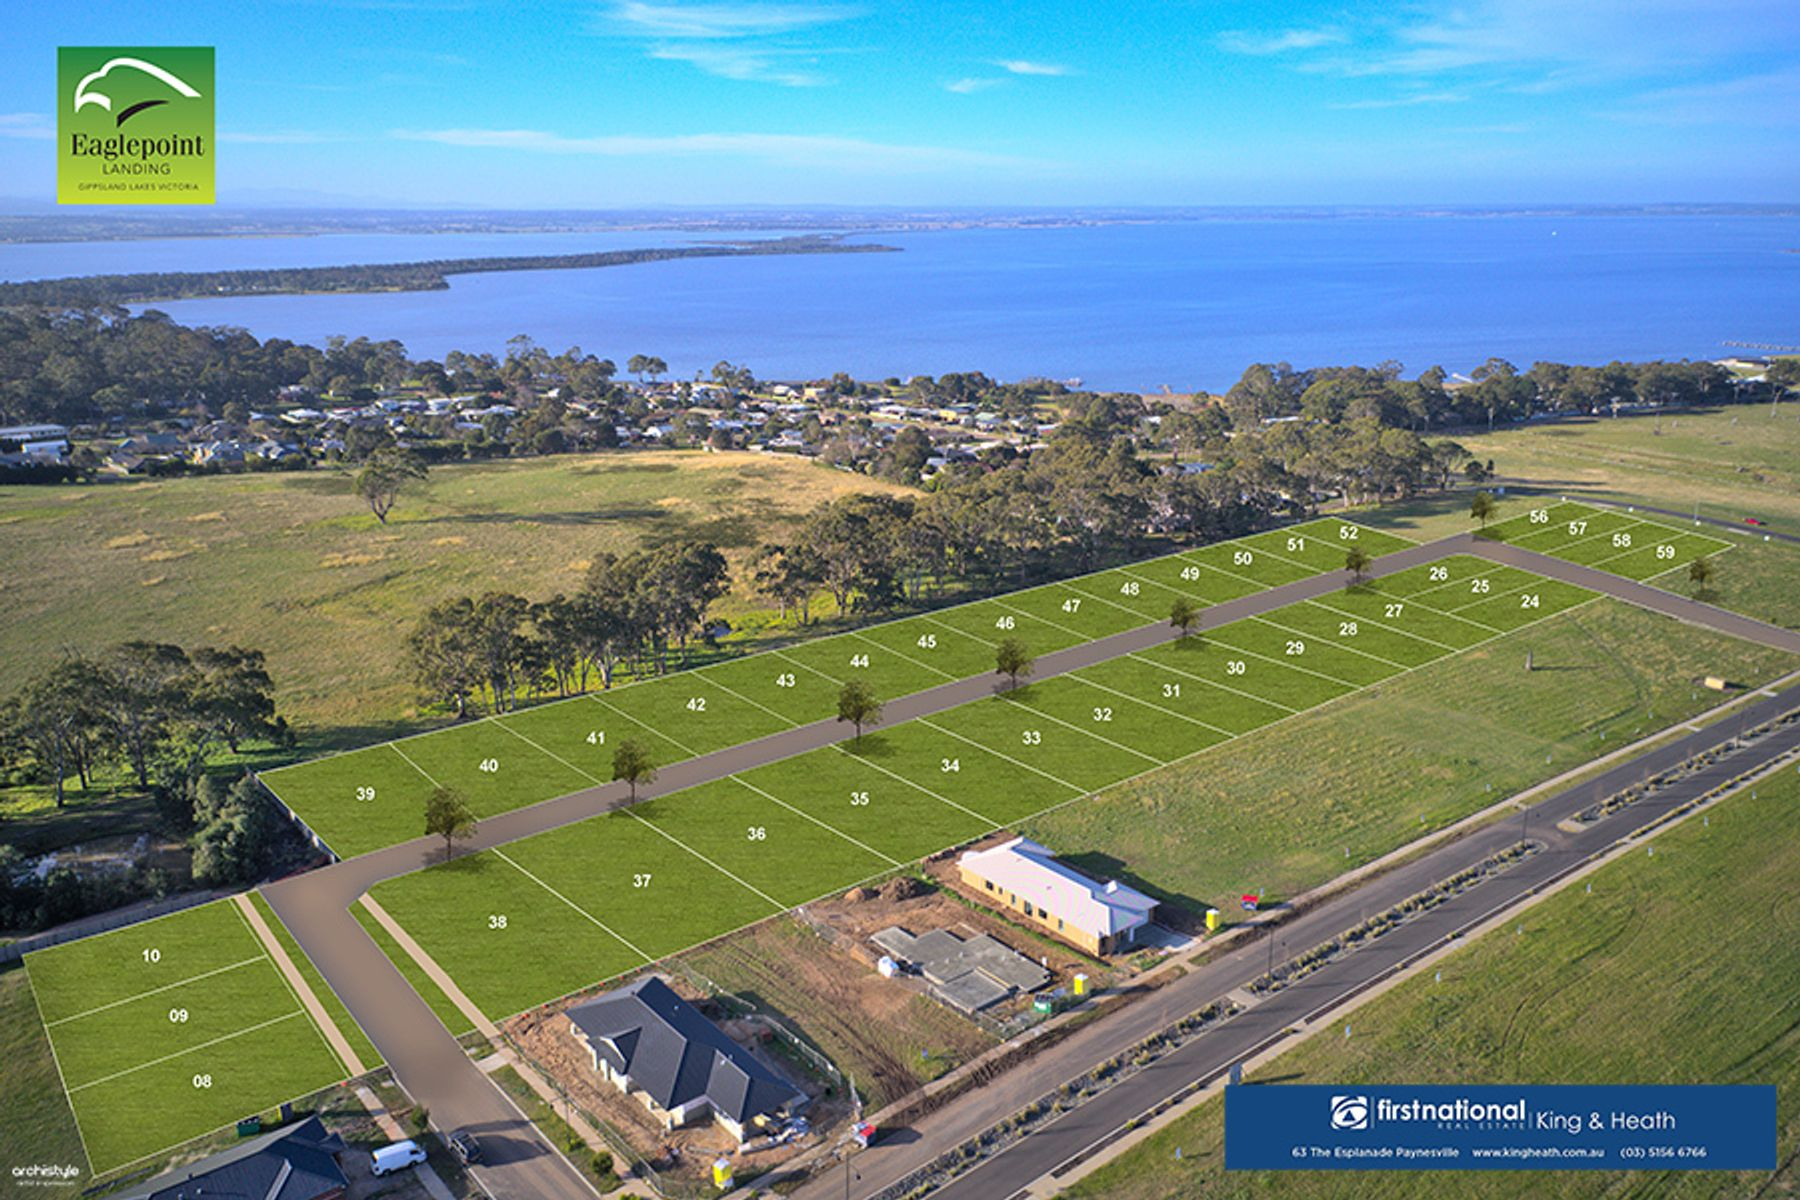 Lot 52 Houghton Crescent, Eagle Point, VIC 3878